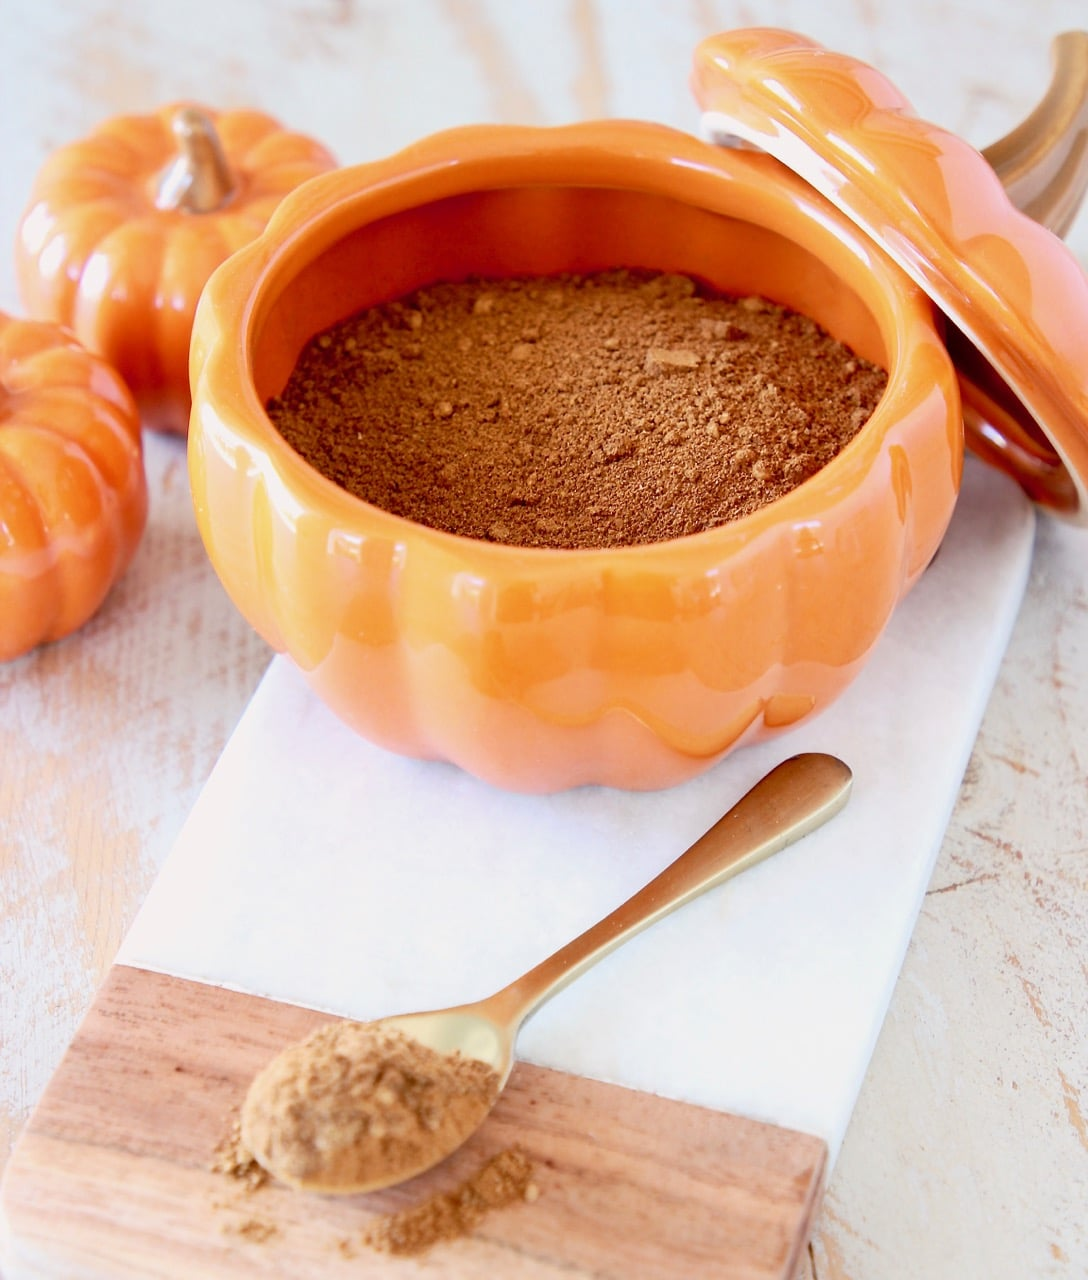 Pumpkin pie spice on small gold spoon on cutting board with ceramic pumpkin filled with pumpkin pie spice and two smaller orange pumpkins on the side